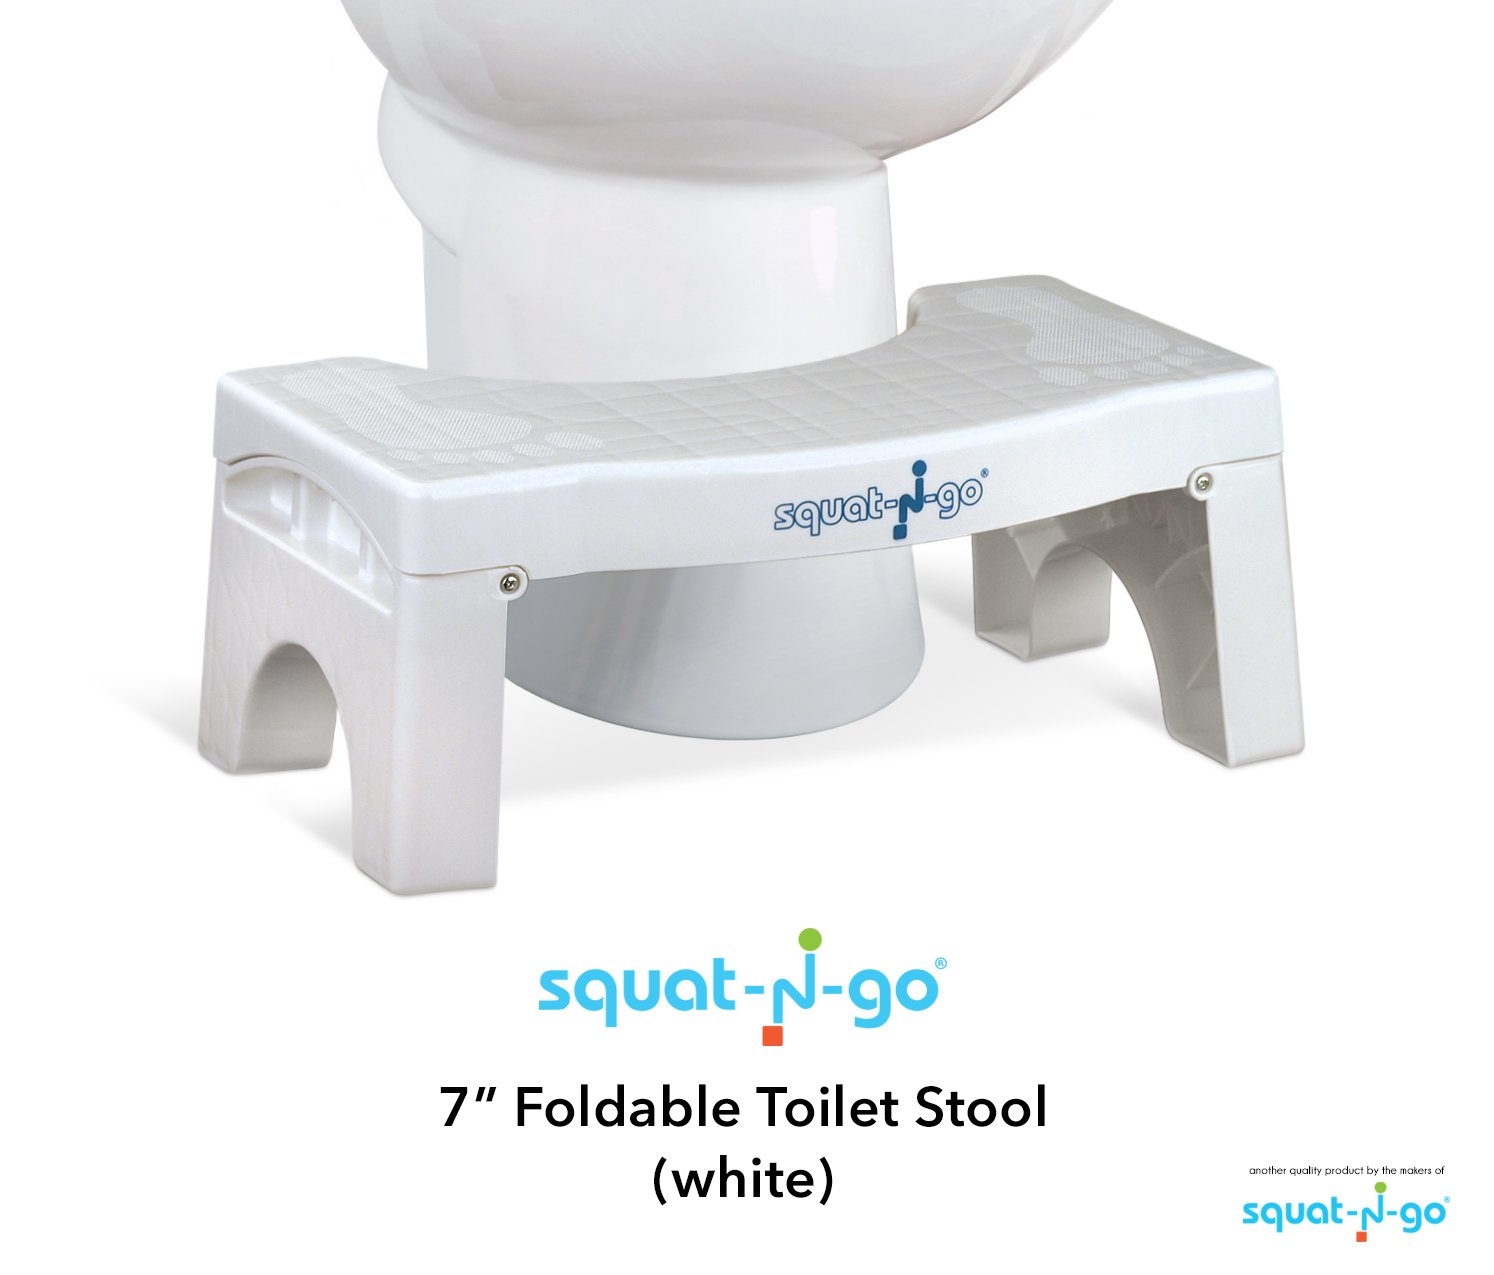 Squat N Go 7'' Folding Squatting Stool | The Only Foldable Toilet Stool | Convenient and Compact - Great for Travel | Fits All Toilets, Folds for Easy Storage, Use in Any Bathroom | White Color | by SQUAT-N-GO